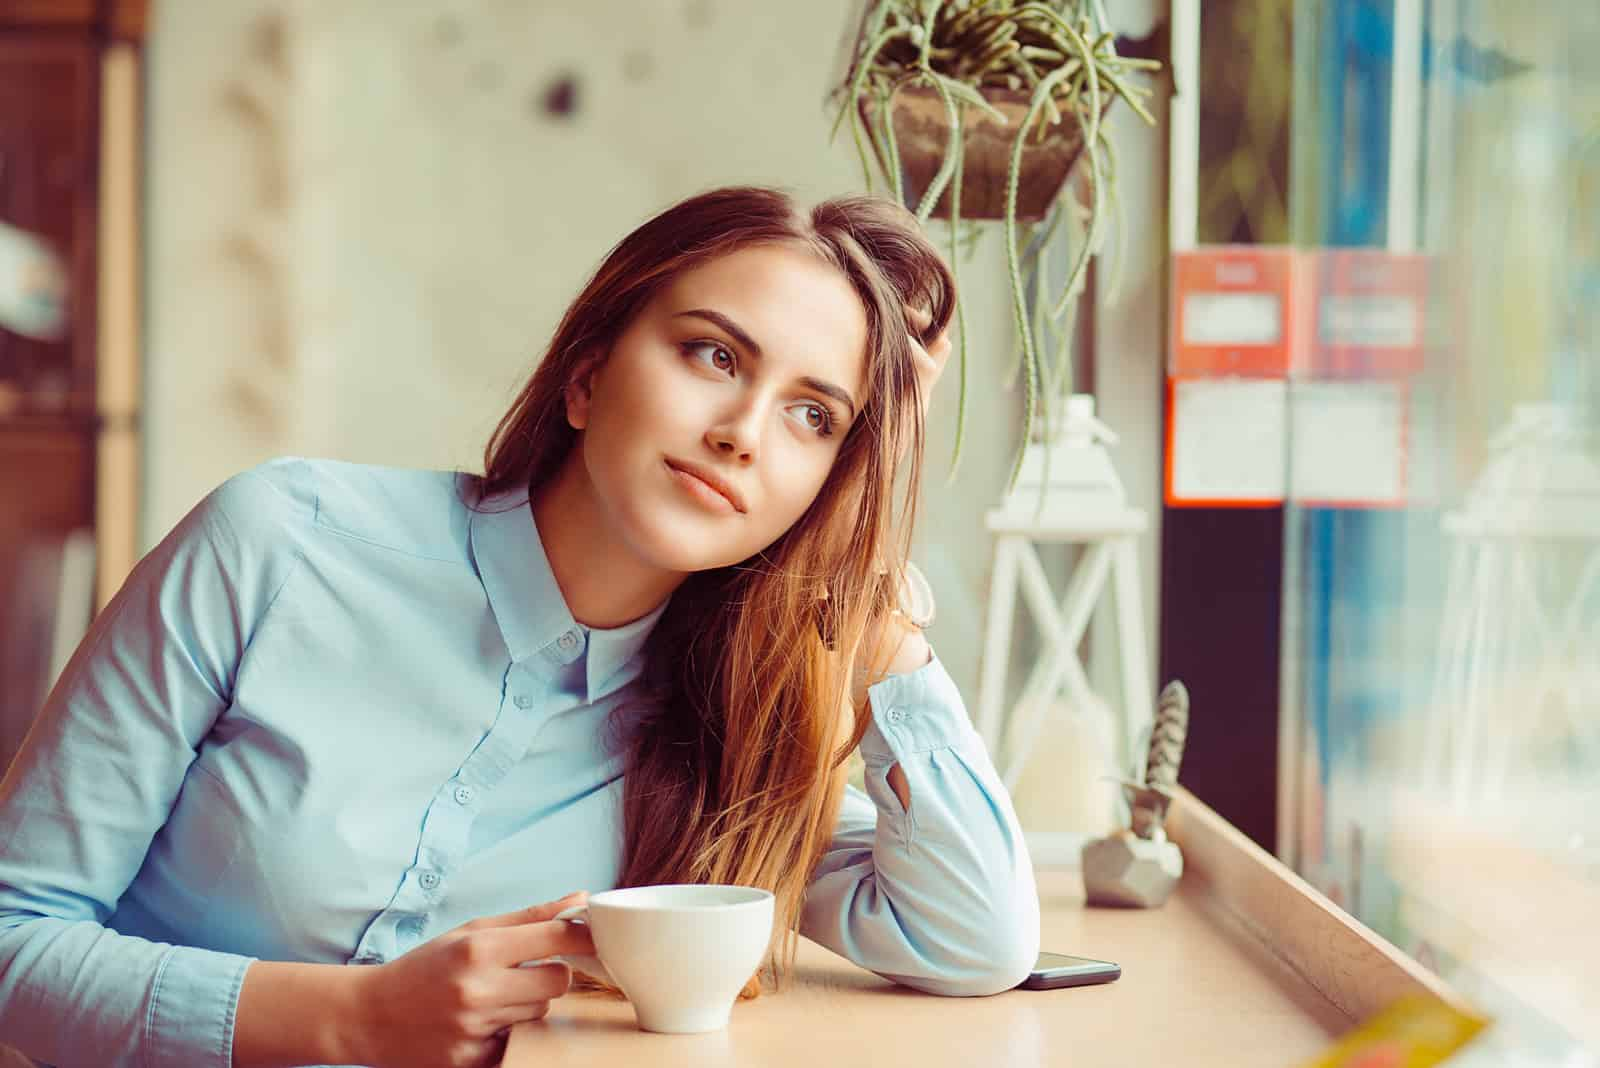 an imaginary brown-haired woman sits and drinks coffee